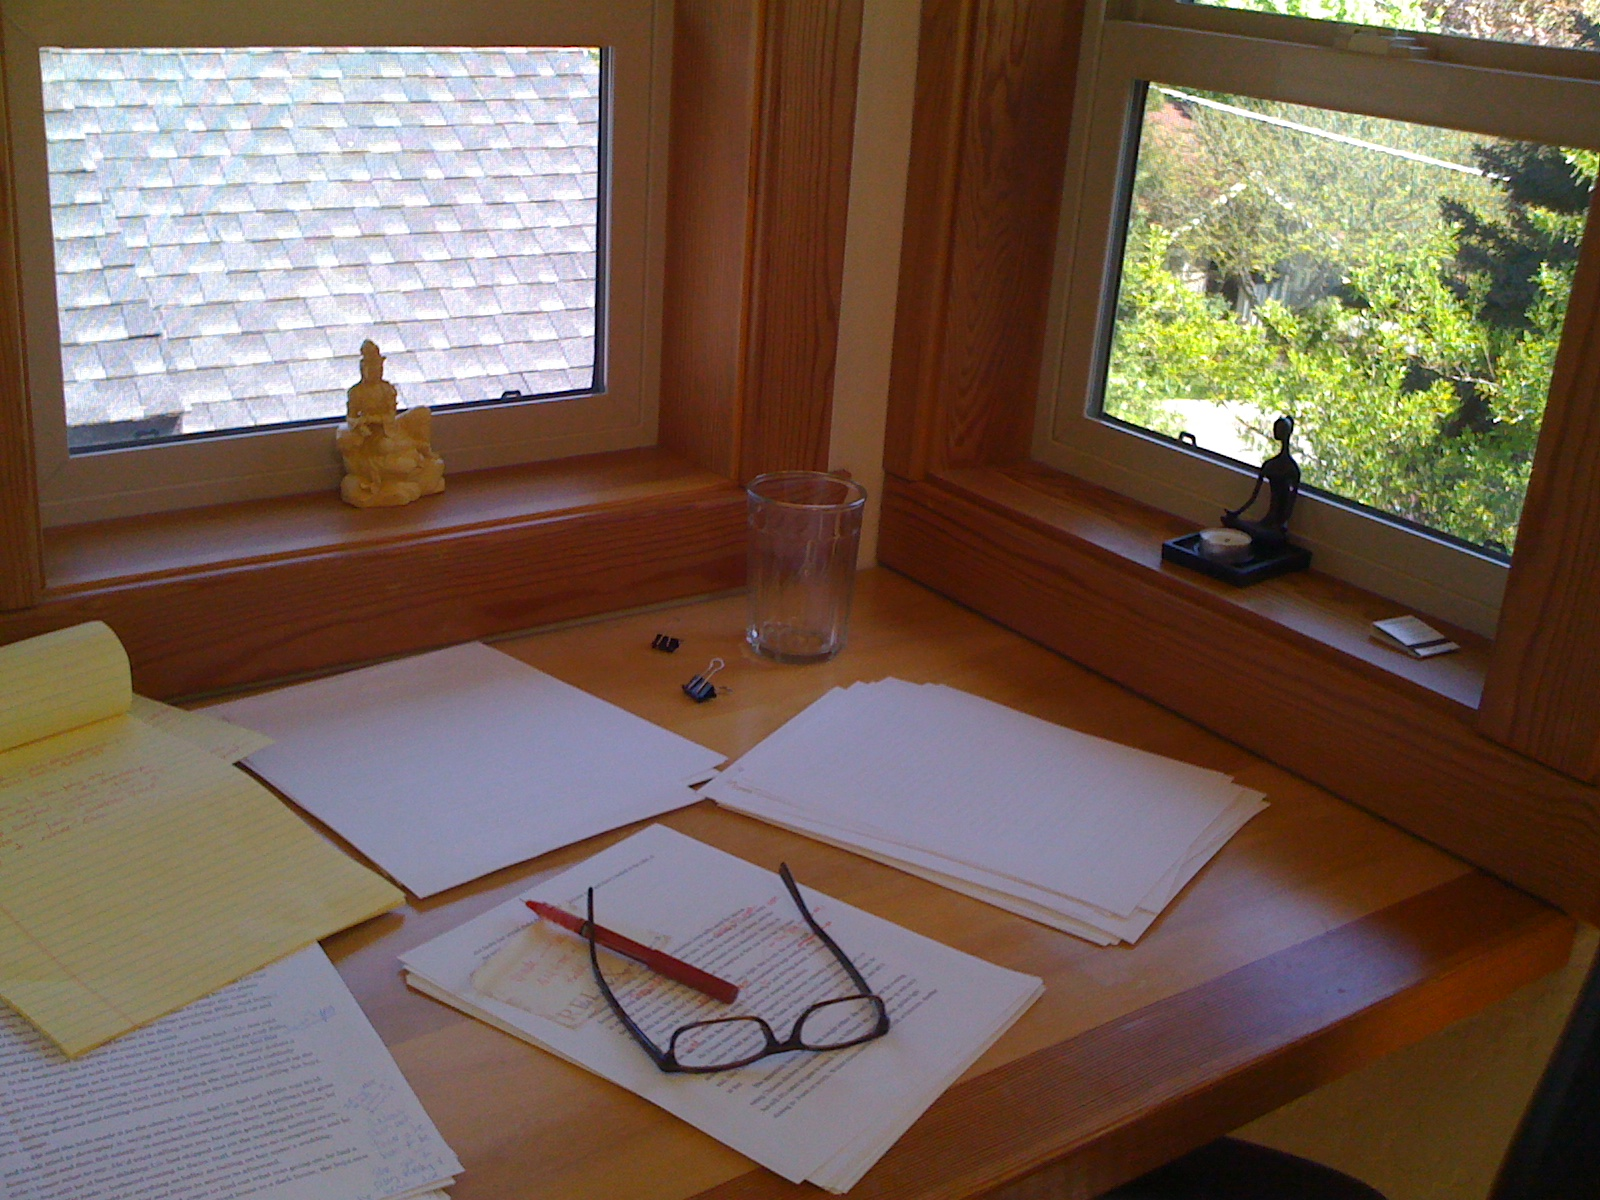 create your own virtual writing retreat | midge raymond's blog